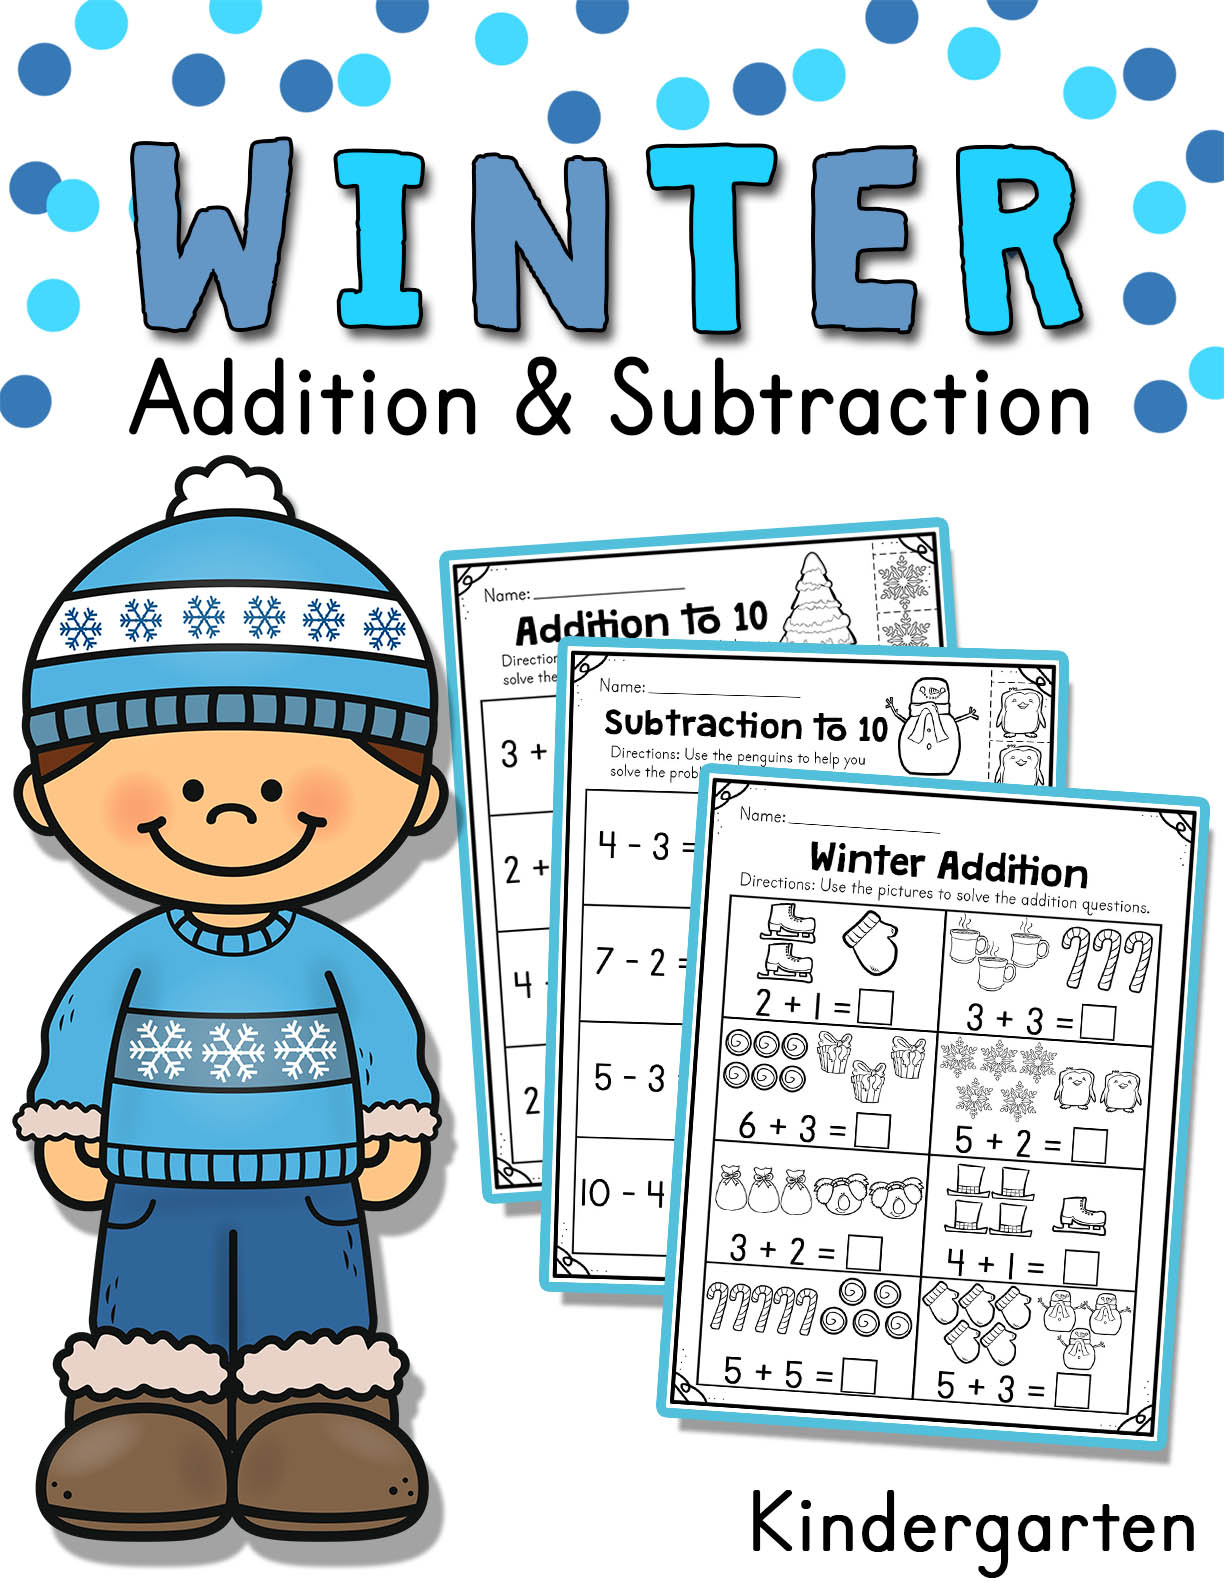 hight resolution of Winter Addition and Subtraction Worksheets (1 to 10) - Made By Teachers